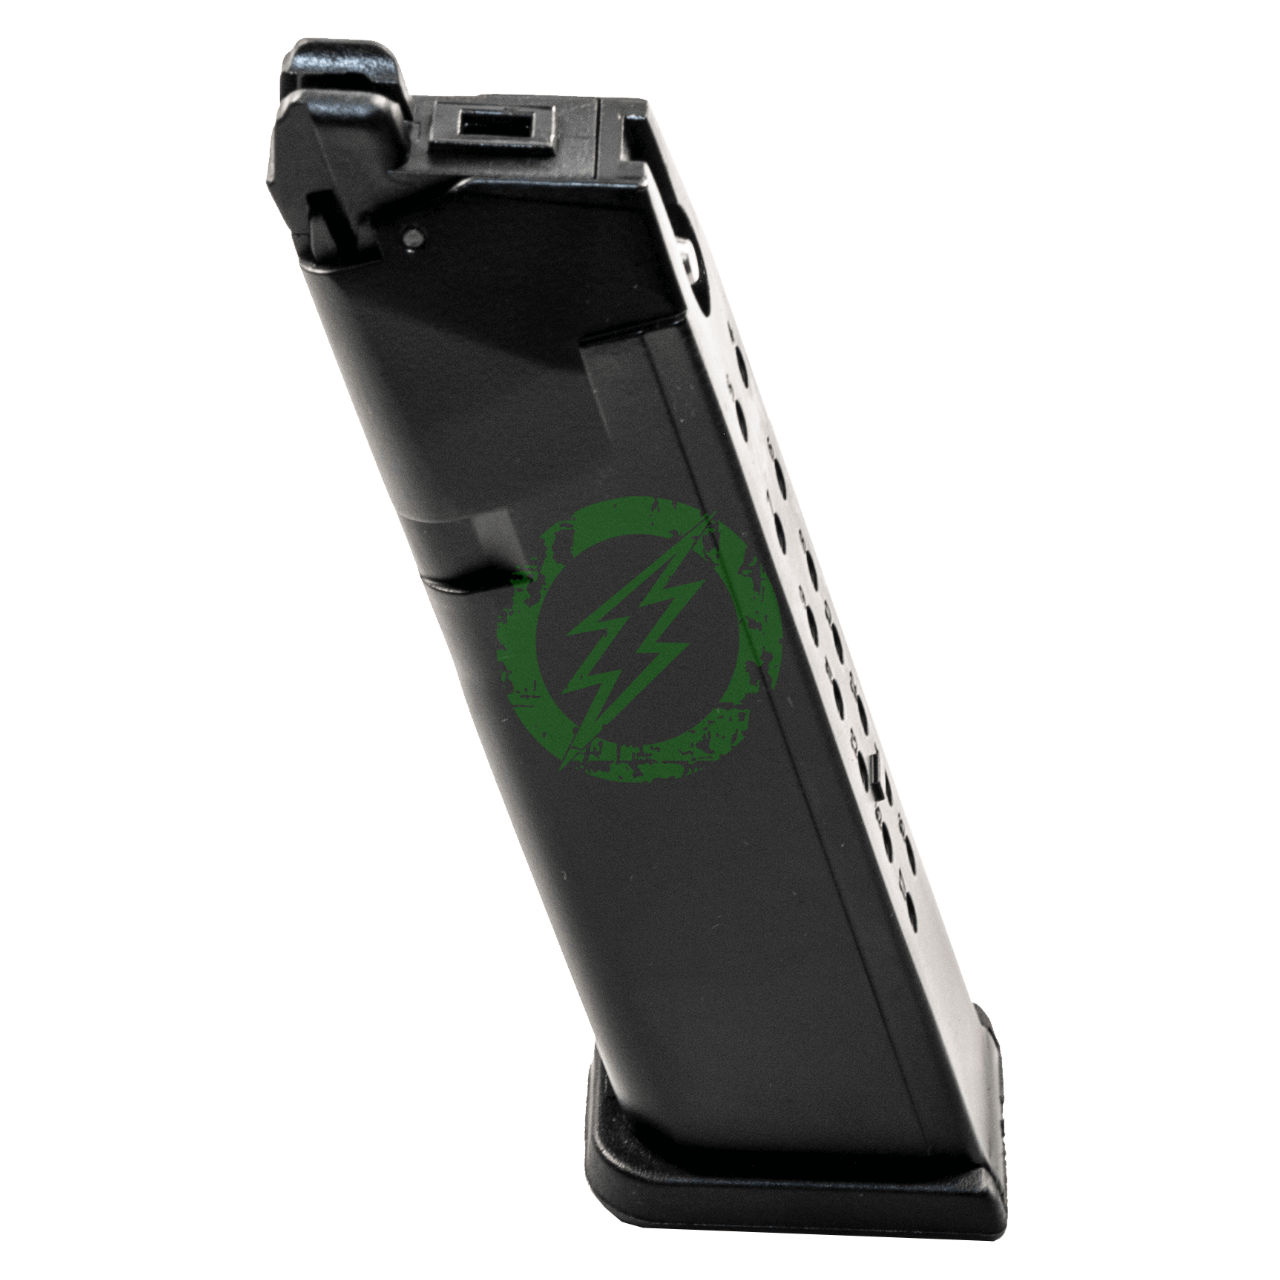 Action Army AAP-01 Assassin GBB Pistol Magazine